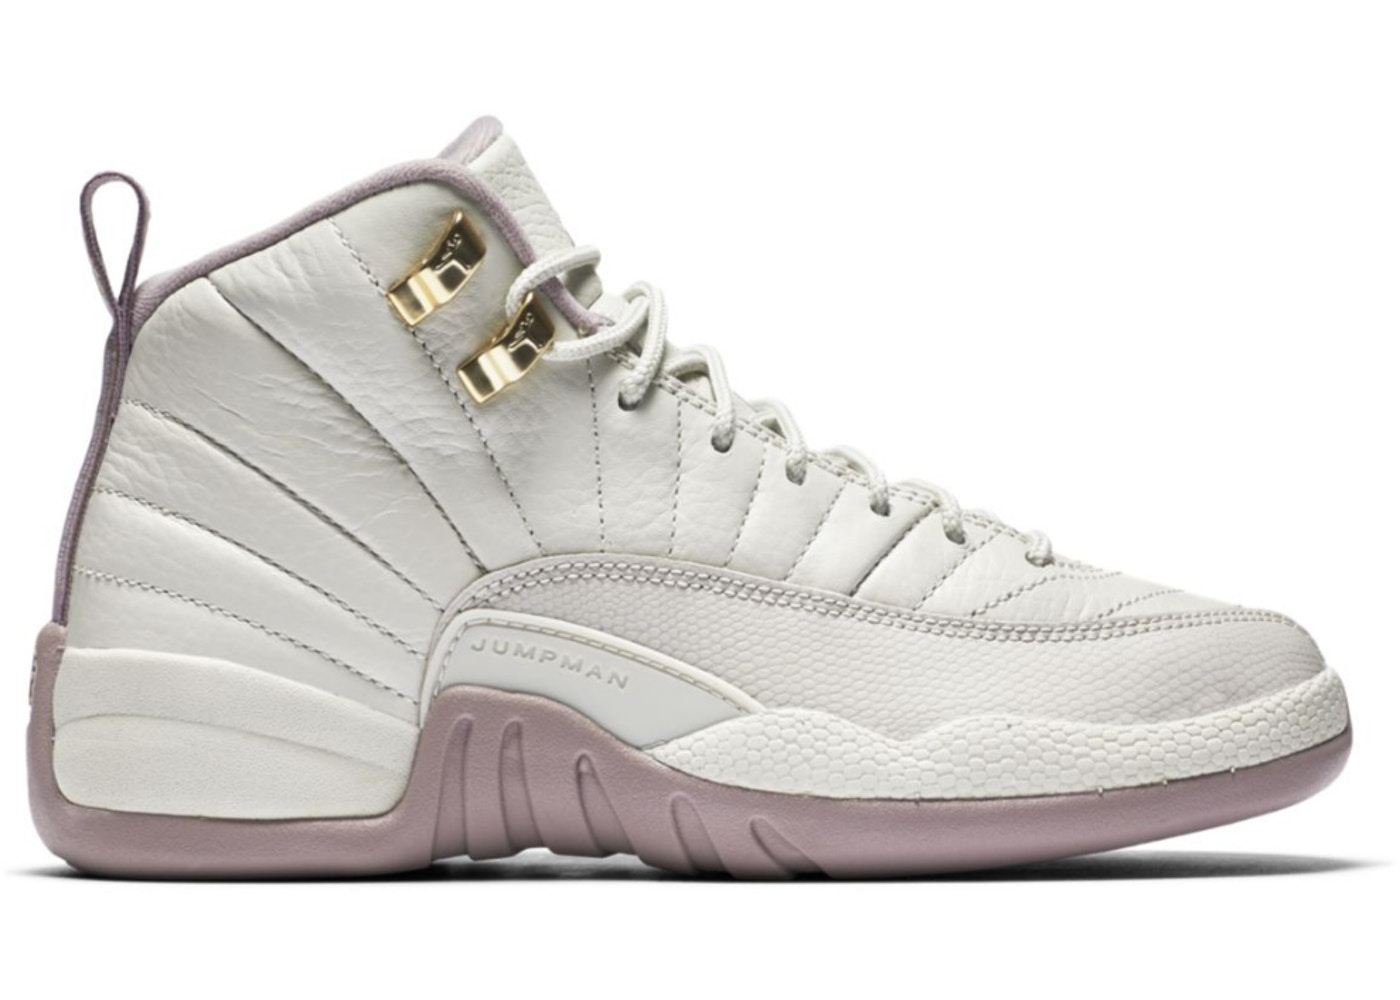 0c5284e7429326 Jordan 12 Retro Heiress Plum Fog (GS) - 845028-025